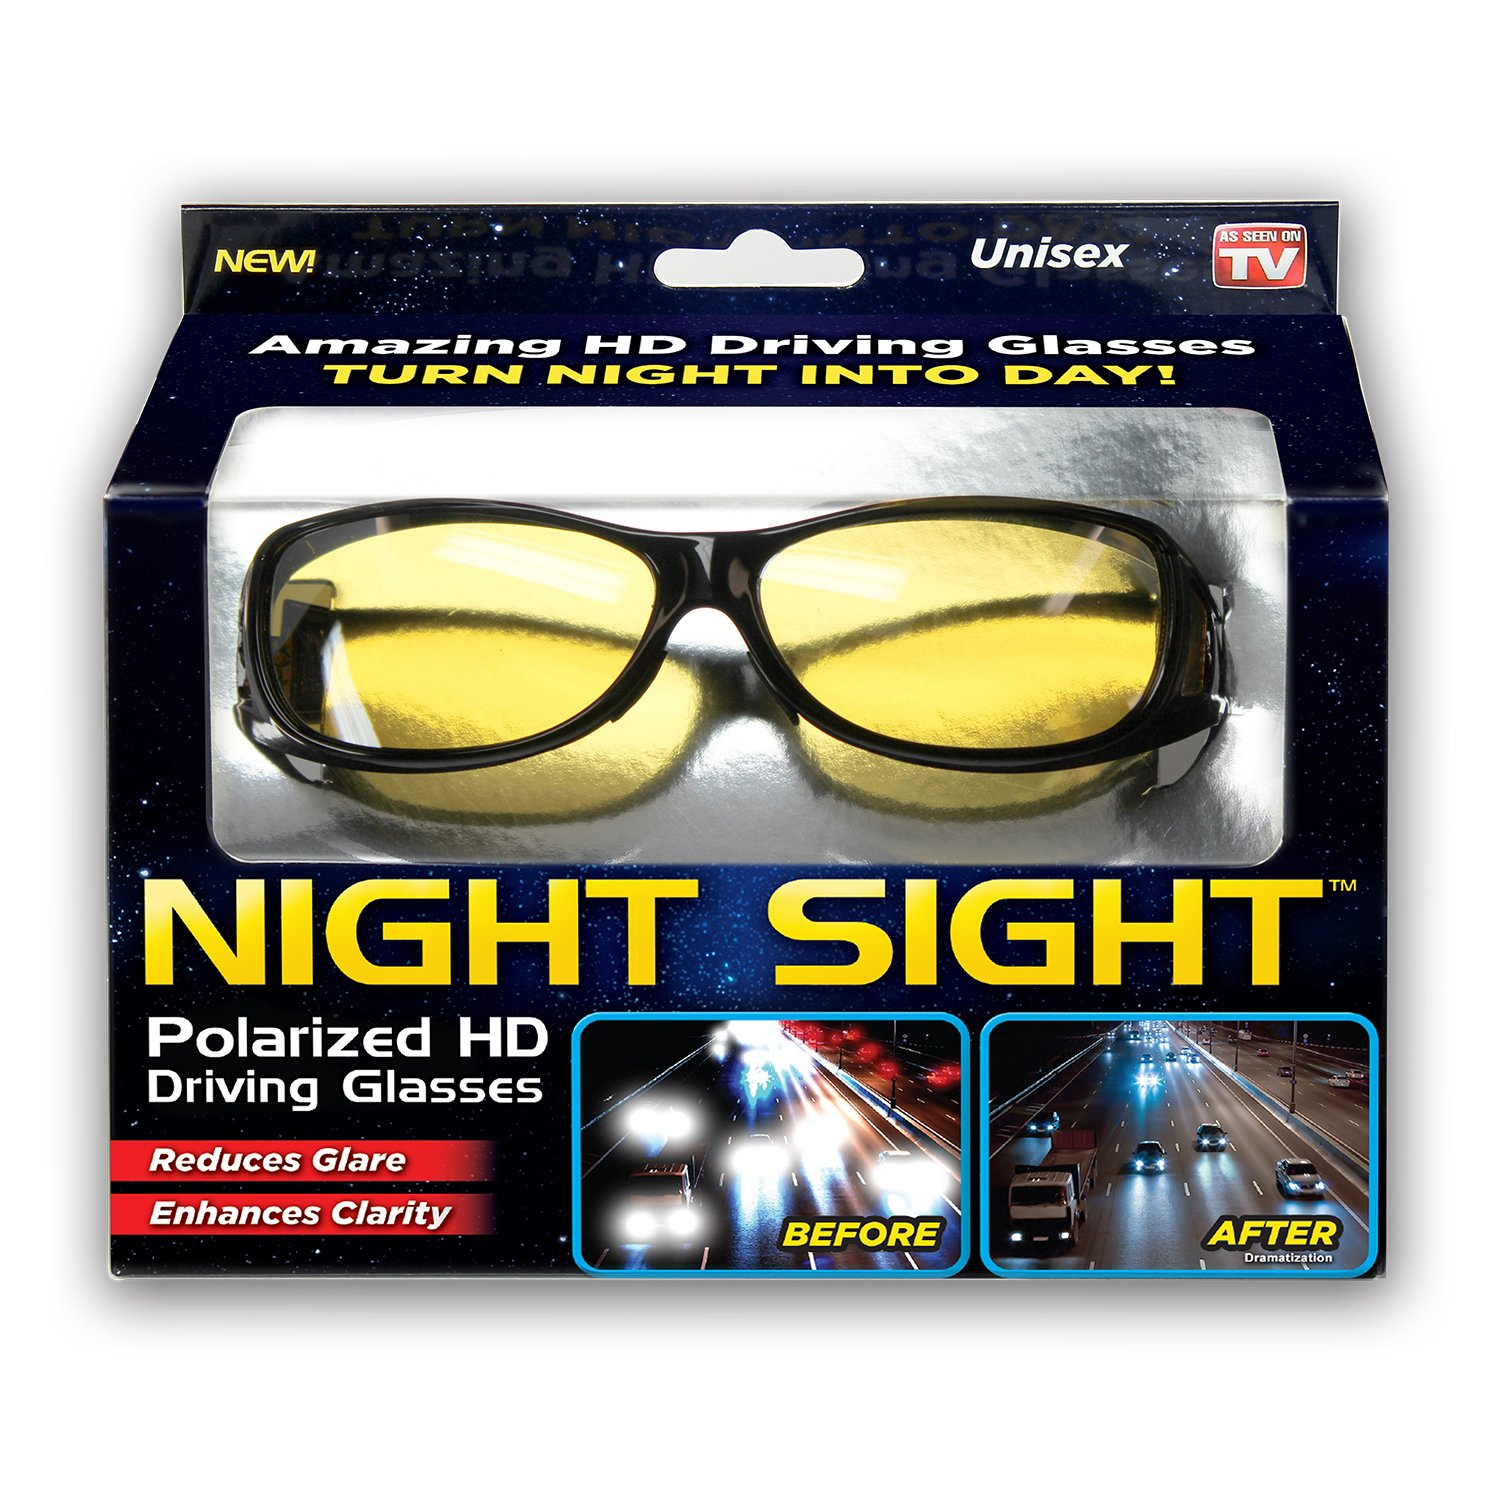 Ontel Night Sight | HD Polarized Night Vision Driving Sunglasses | Men and Women, Anti Glare, Scratch Resistant, Stylish, As Seen on TV NS-MC12/4